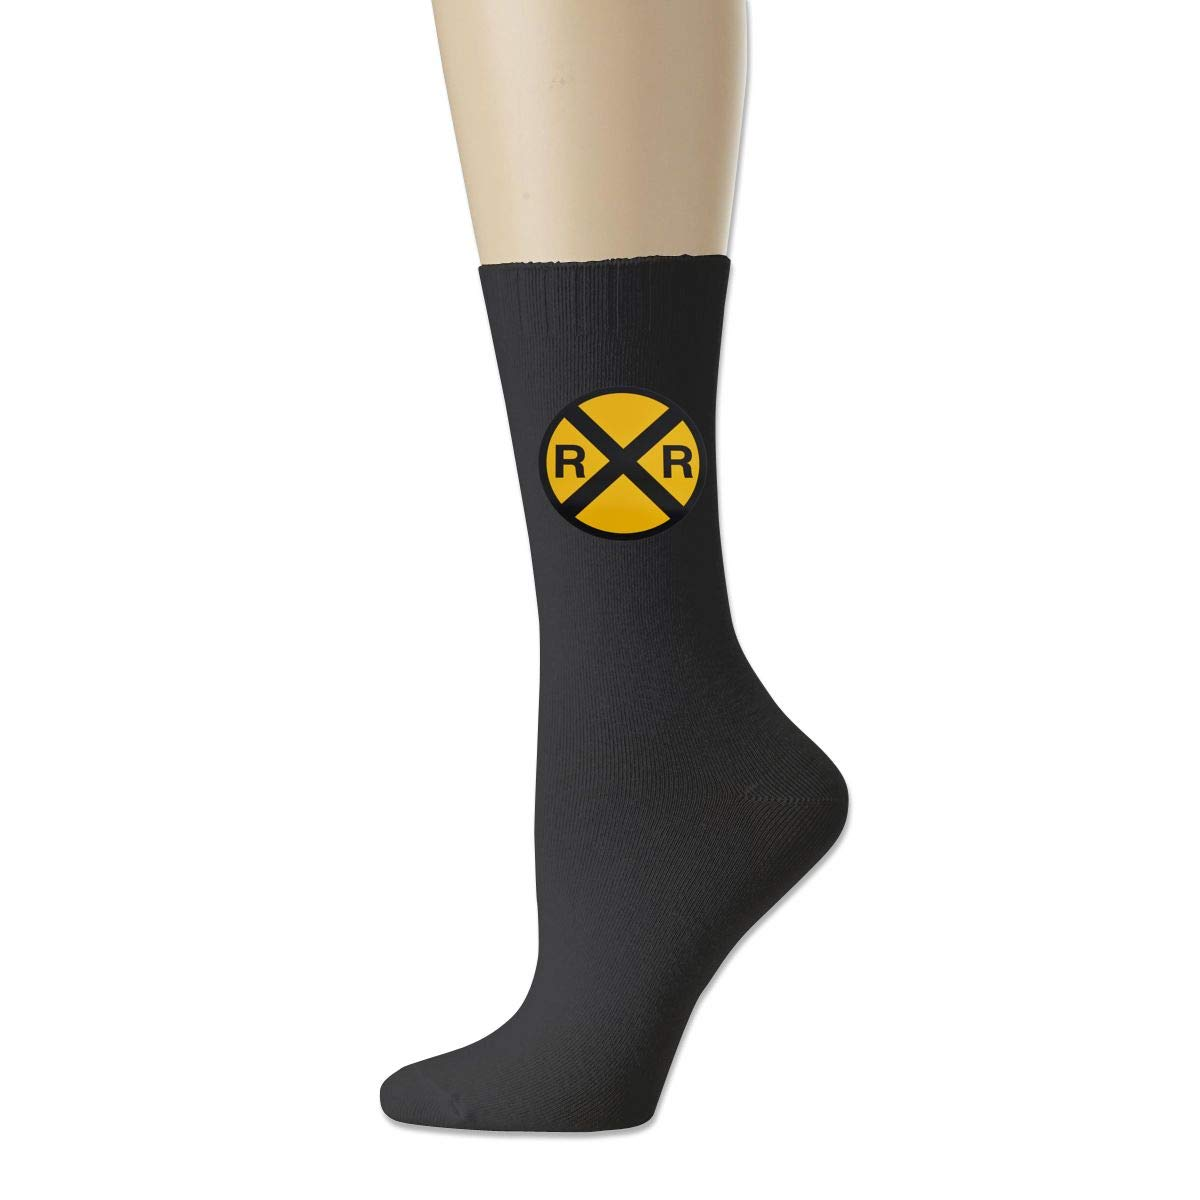 Cotton Crew Bobbysox Ski Socks Unisex Soccer Socks Cotton Socks-Railroad Crossing Sign